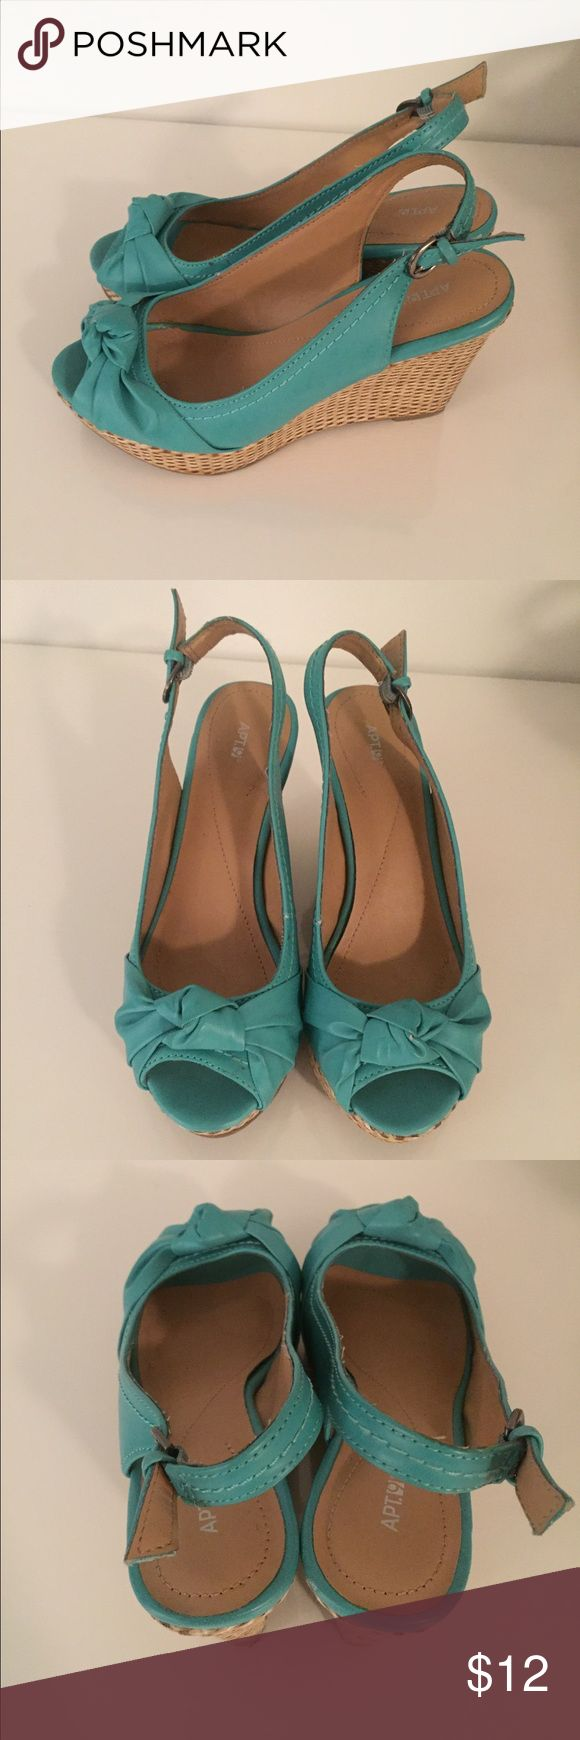 Teal wedge sling backs Very comfortable wedge heels. Need these out of my closet ! Apt. 9 Shoes Wedges